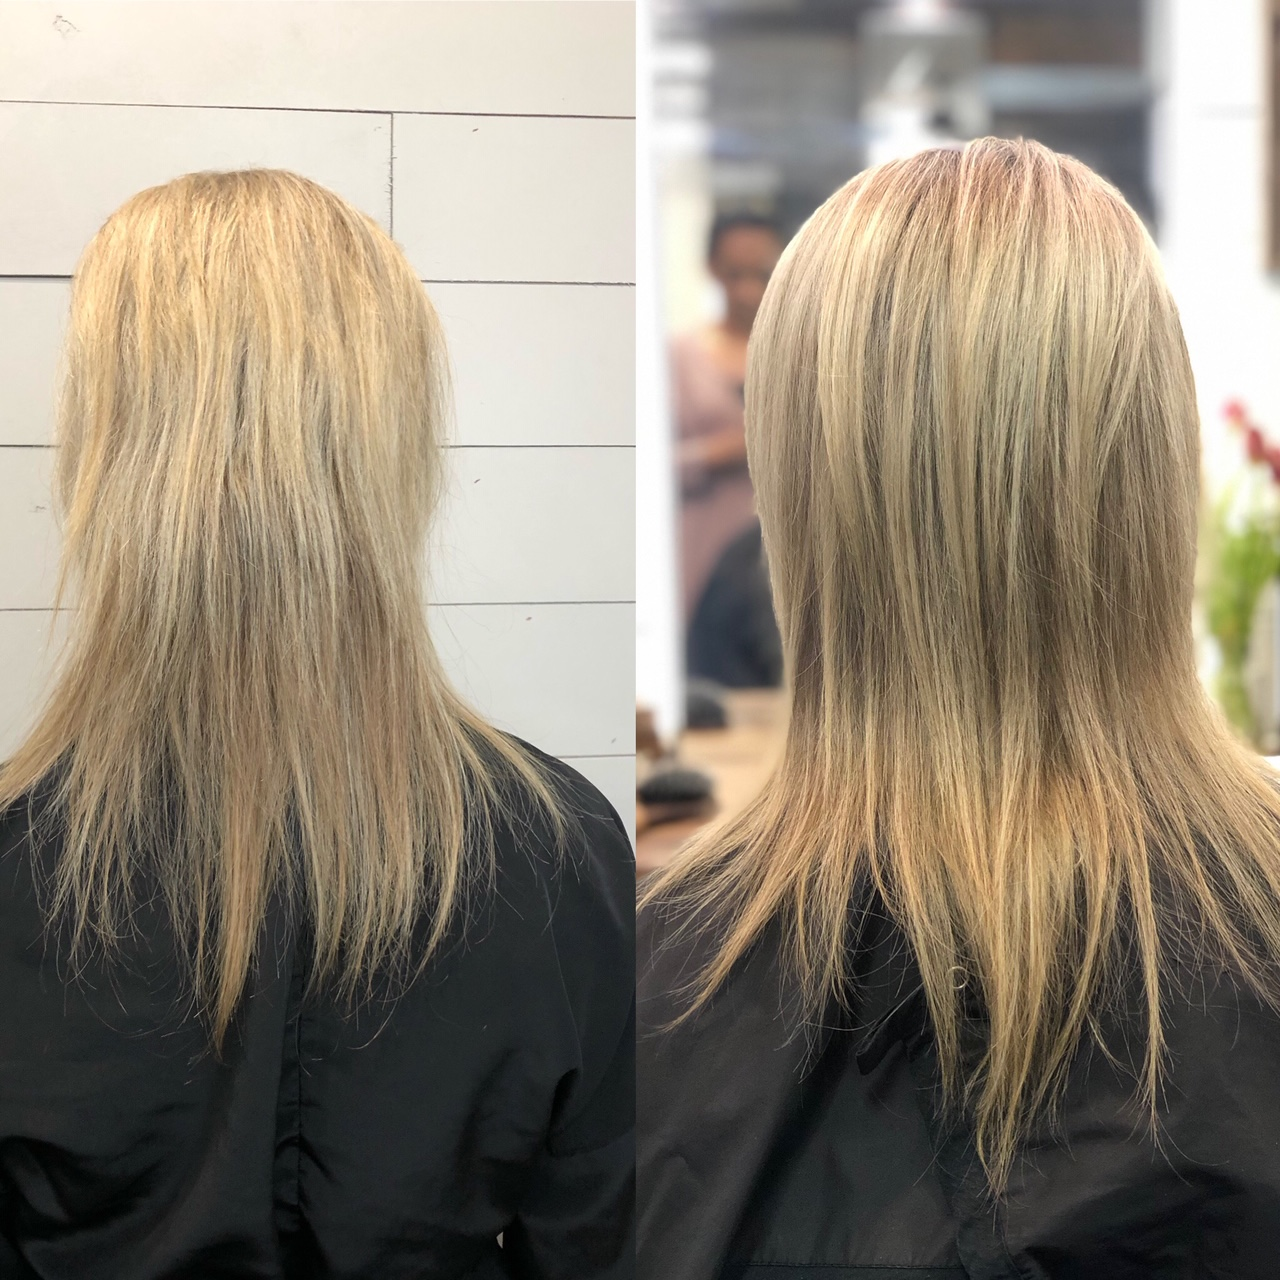 The pic on the left is my hair when I first saw Luz. Hair is broken and damaged from years of tape-ins. Pic on the right is four months into wearing NBR. You can see my hair is growing thicker and longer, with less breakage!